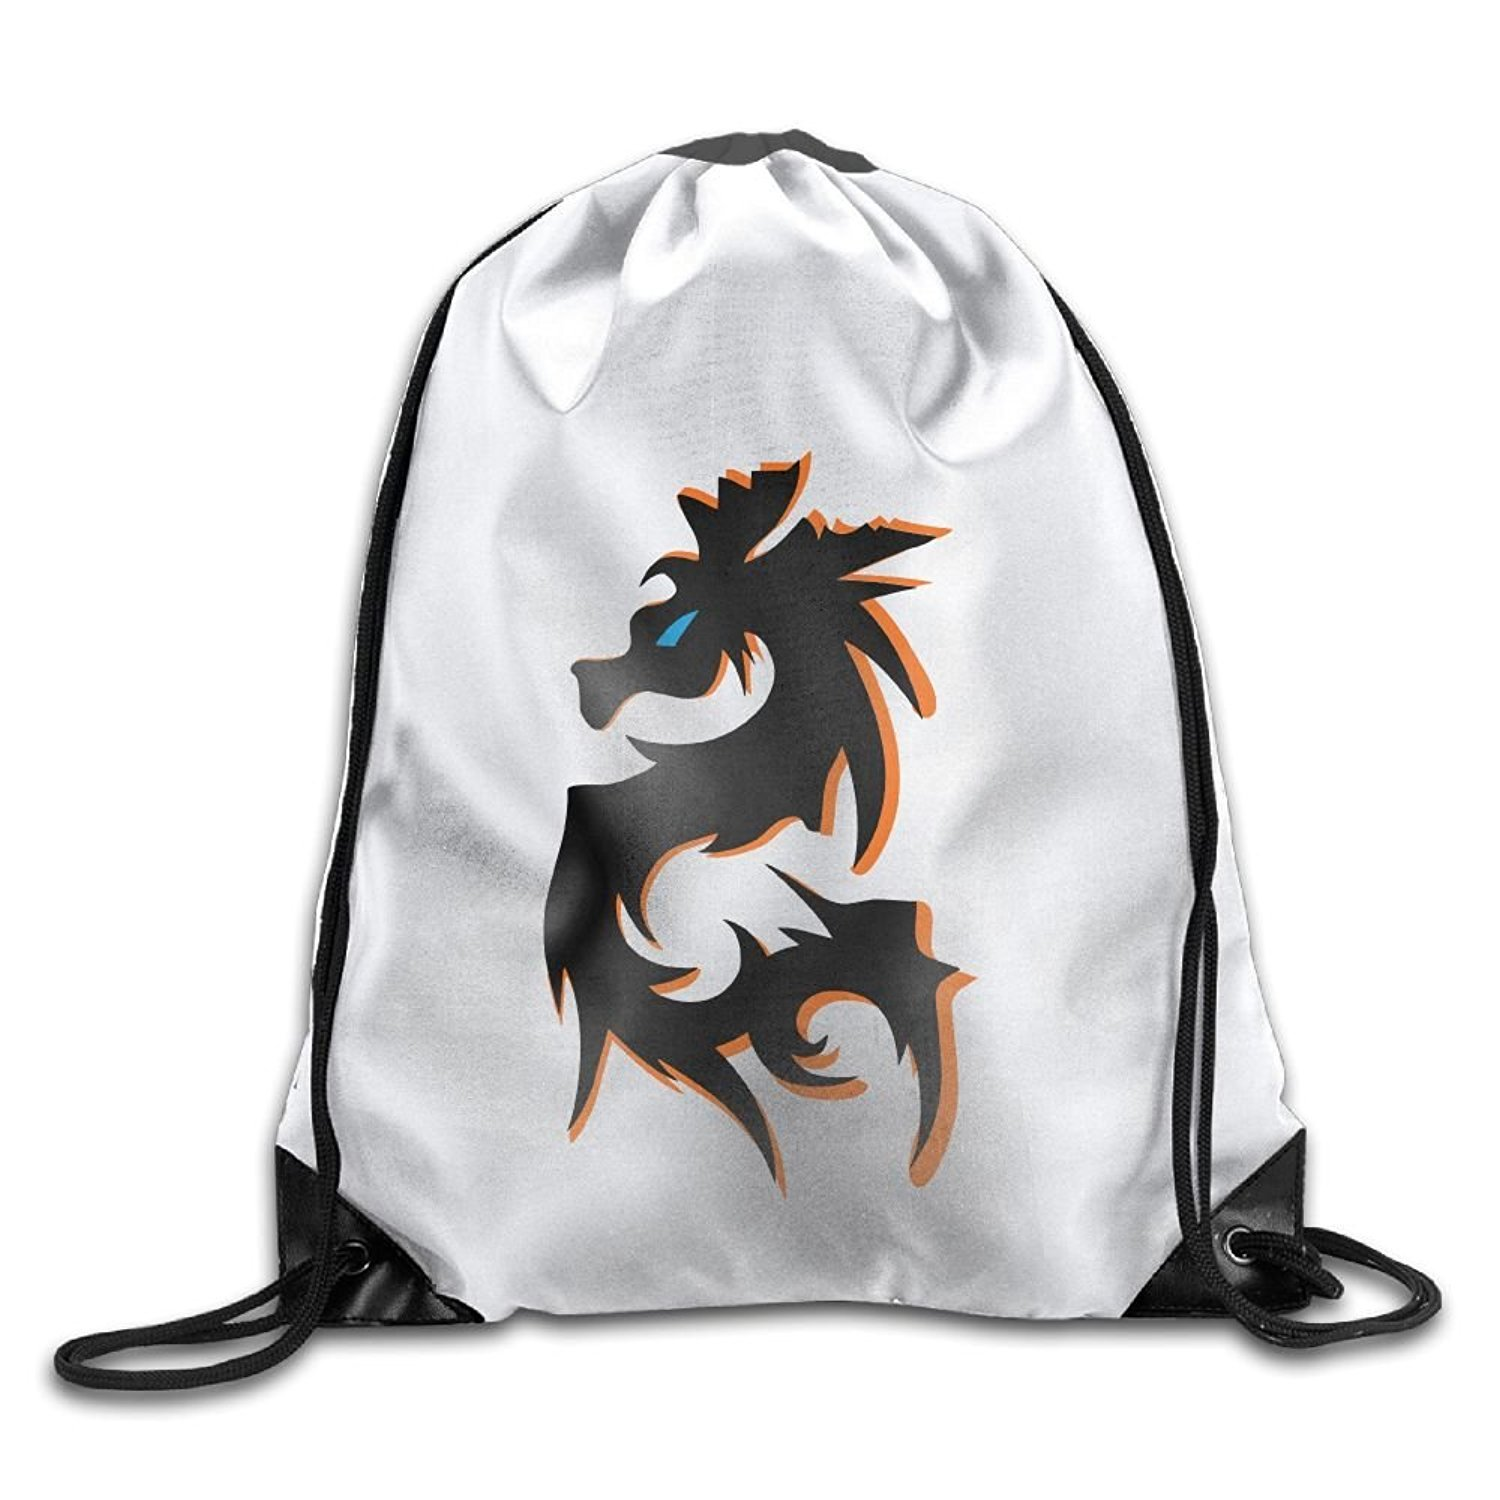 Dragon Cute Gym Drawstring Bags Travel Backpack Tote School Rucksack